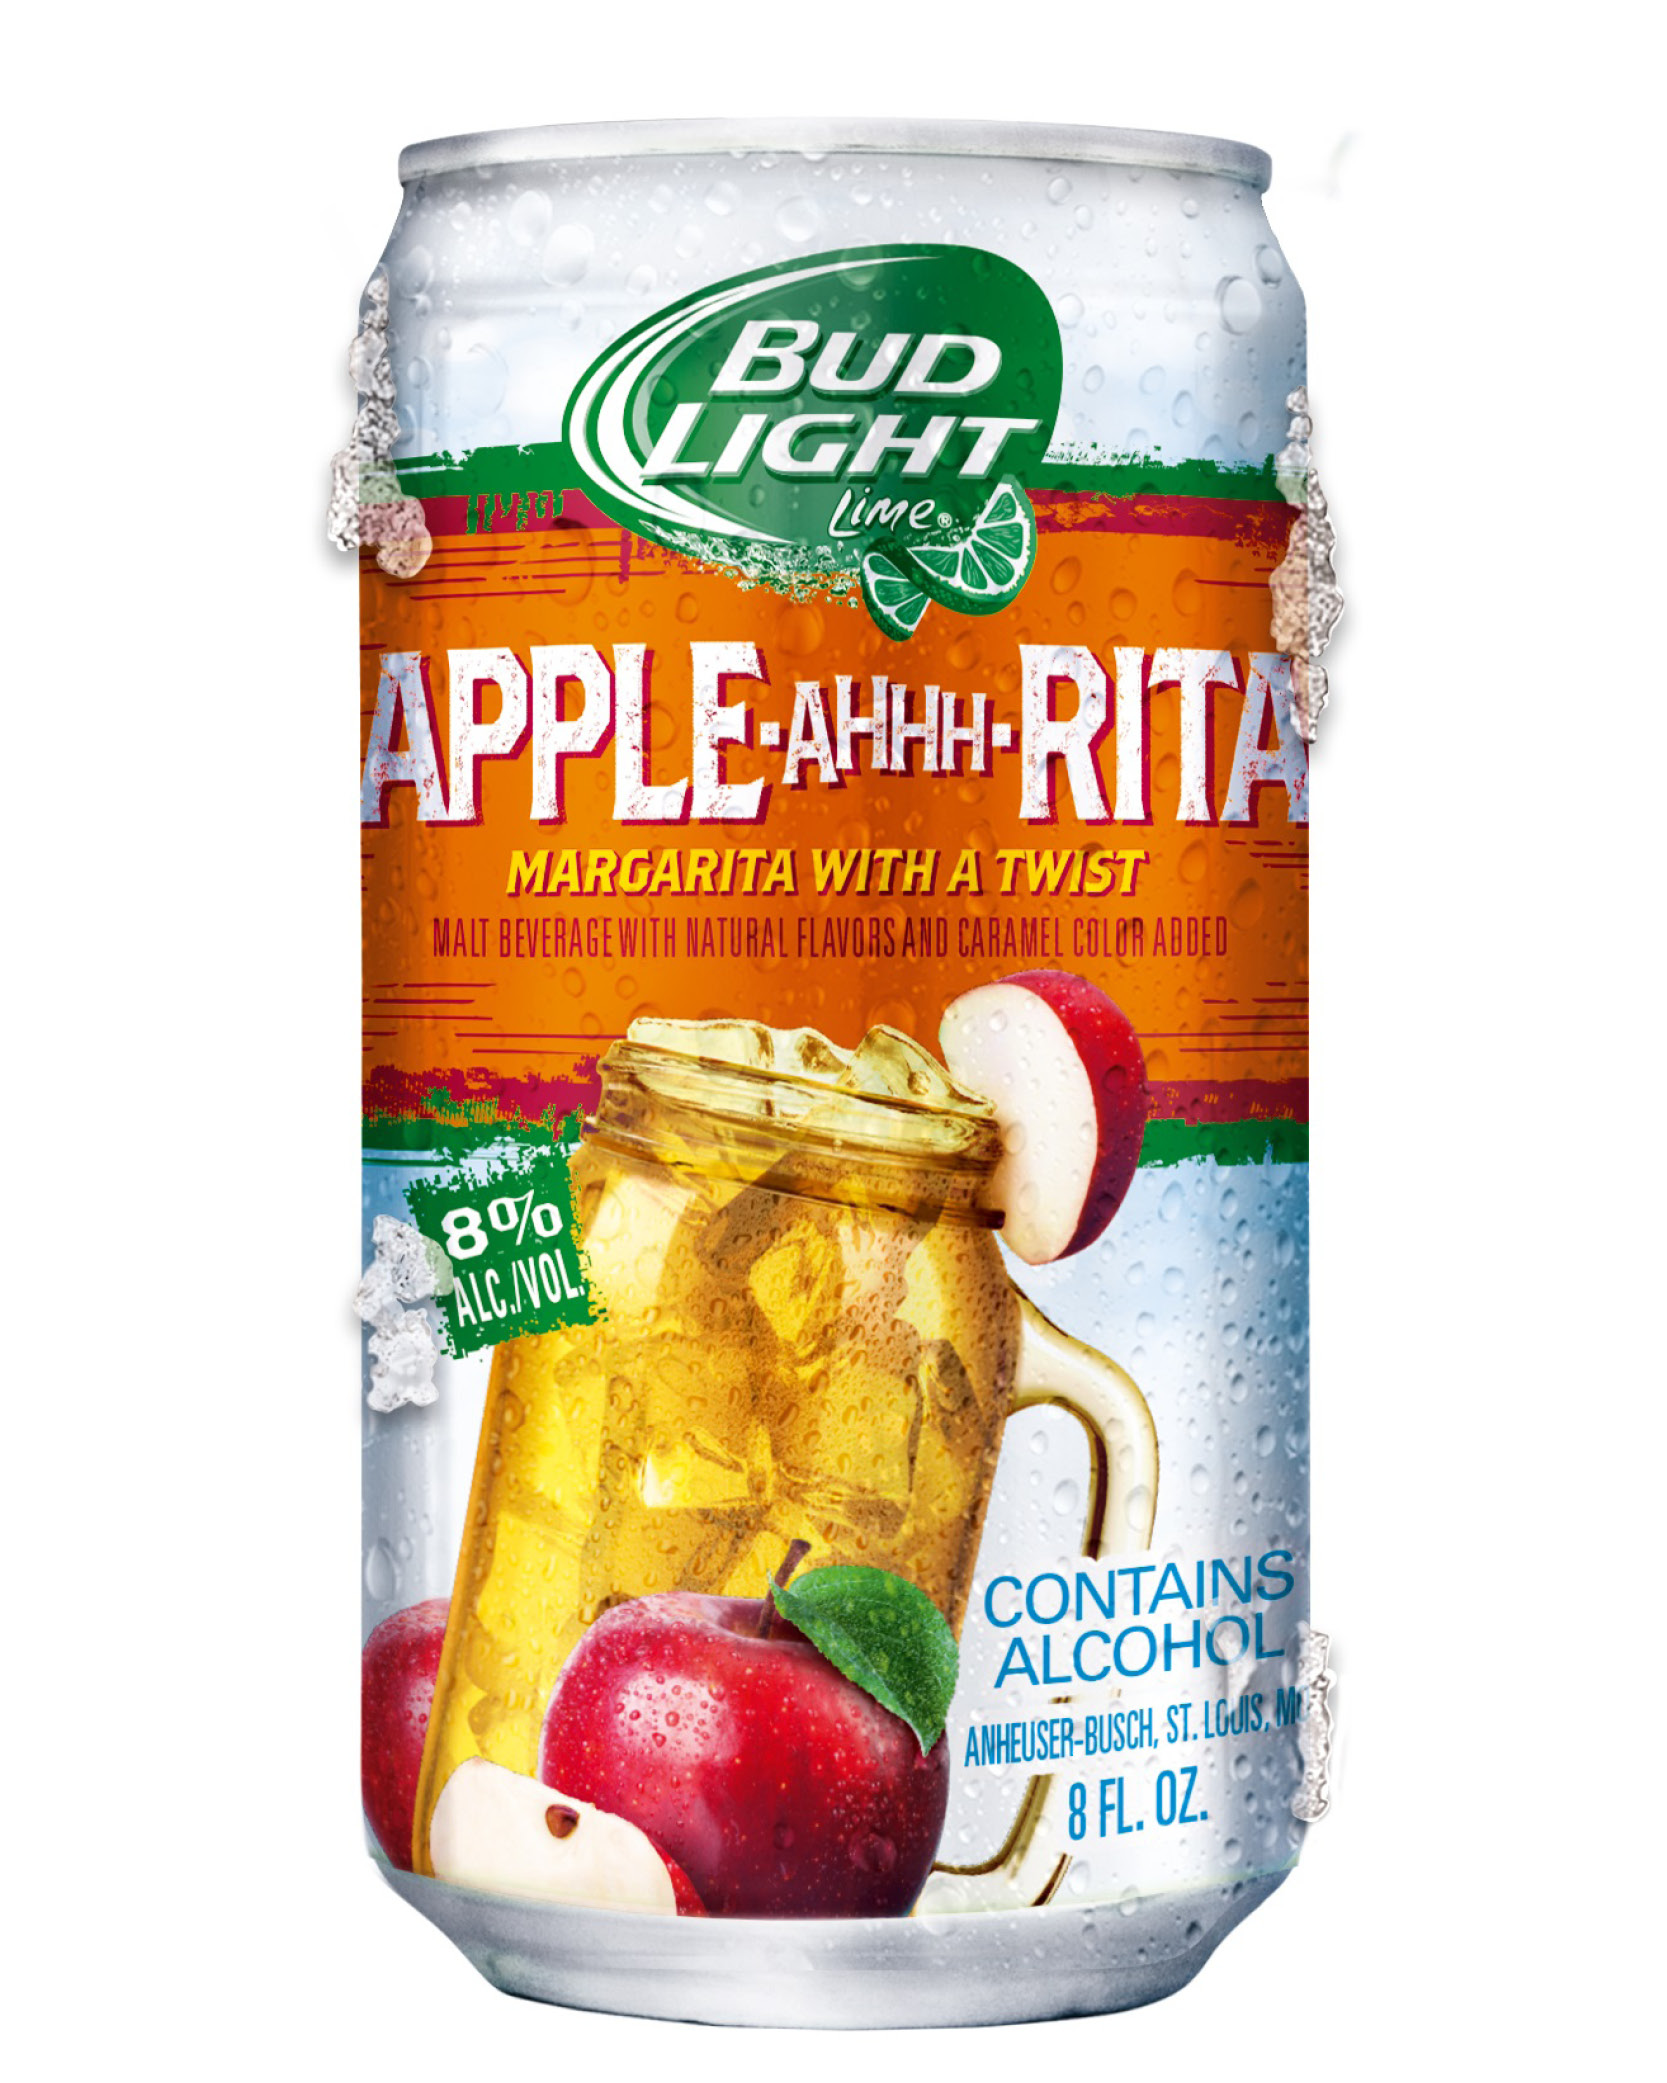 Bud Light Lime Apple Ahhh Rita